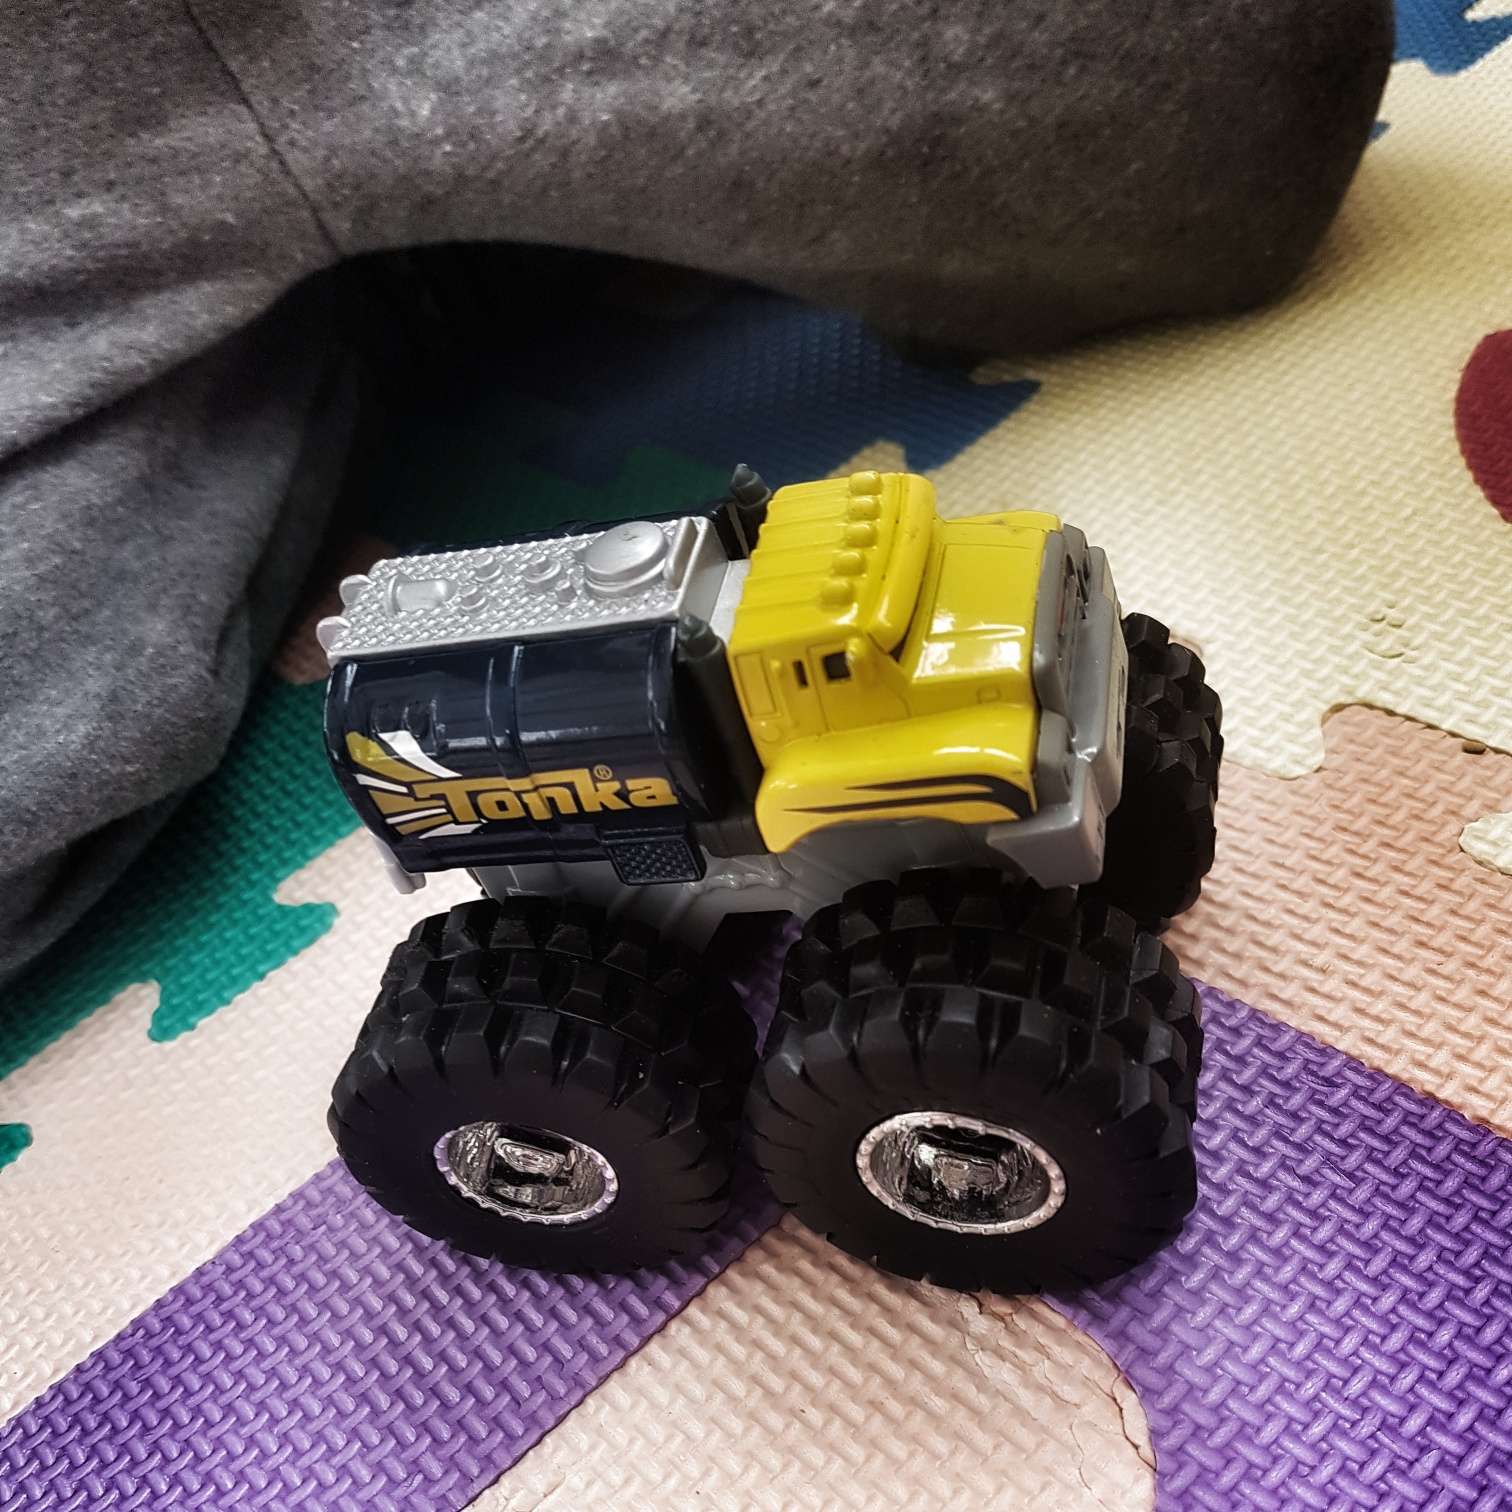 25% off TONKA toys at ASDA